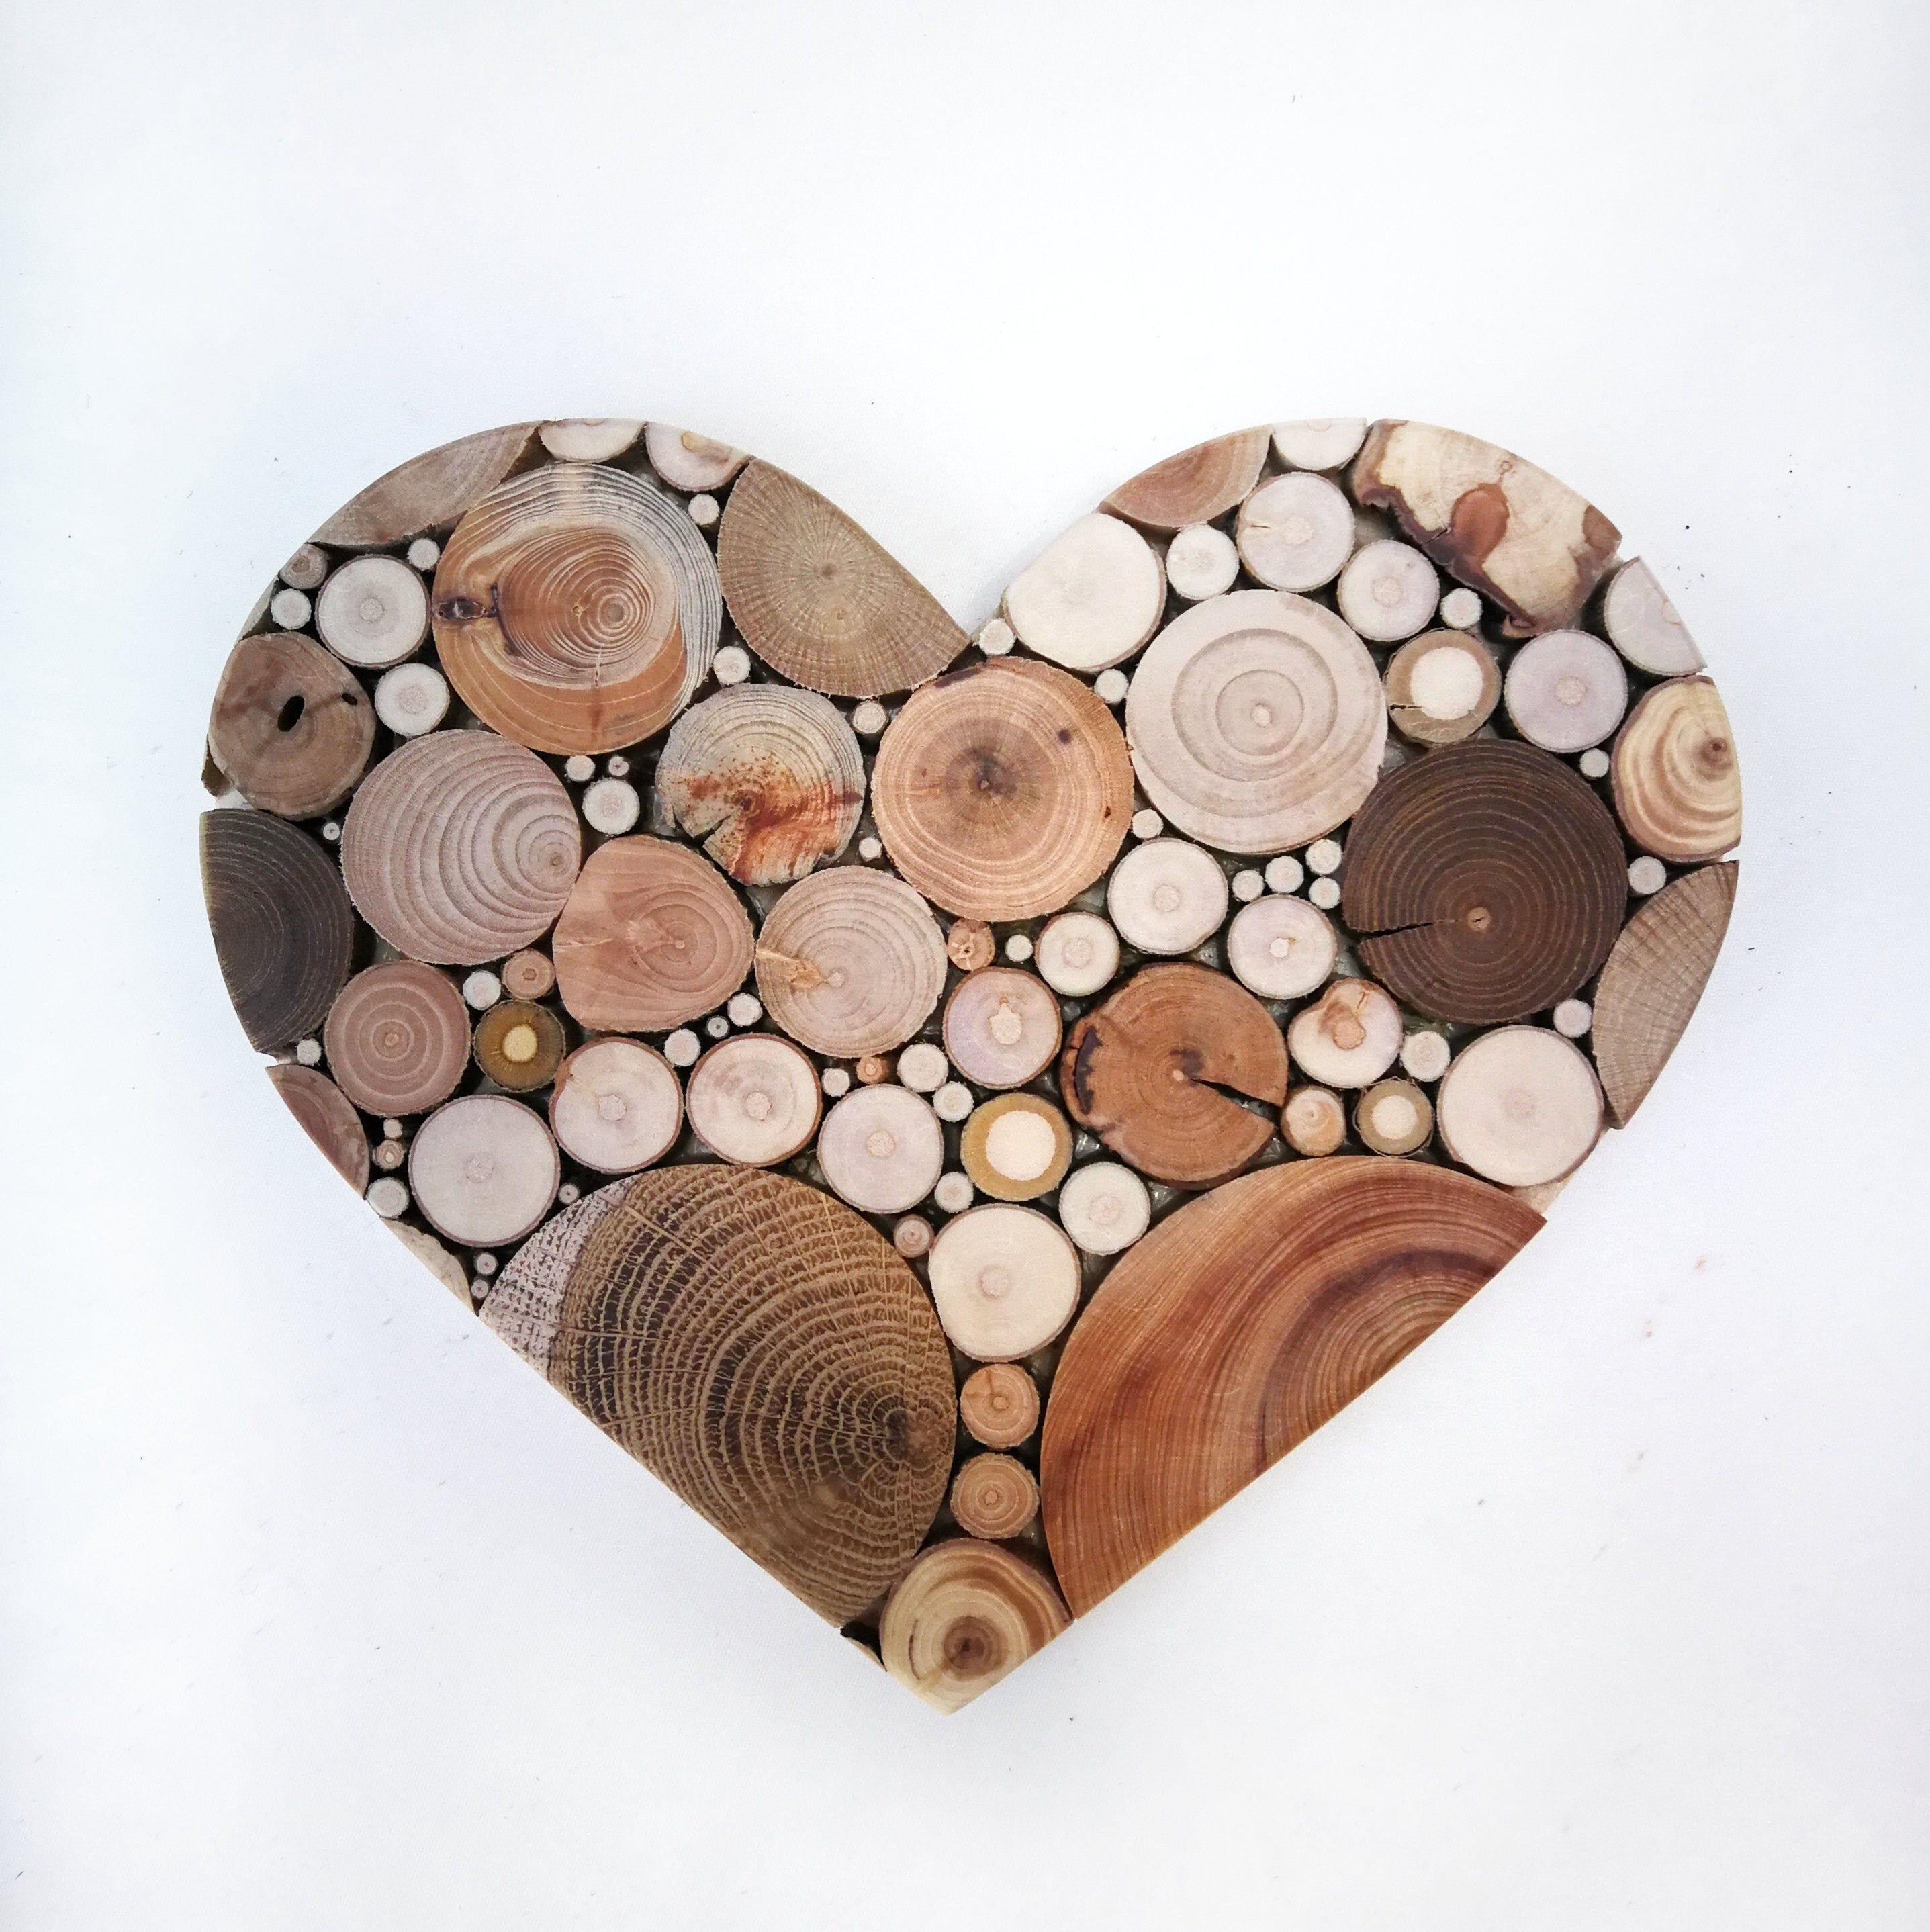 Bedroomdecor Wood Heart Mosaic Unique Wedding Gift For Couple Small 3d Wood Wall Art Wooden Heart Decor Couple In 2020 Wood Hearts Heart Decorations Wooden Hearts